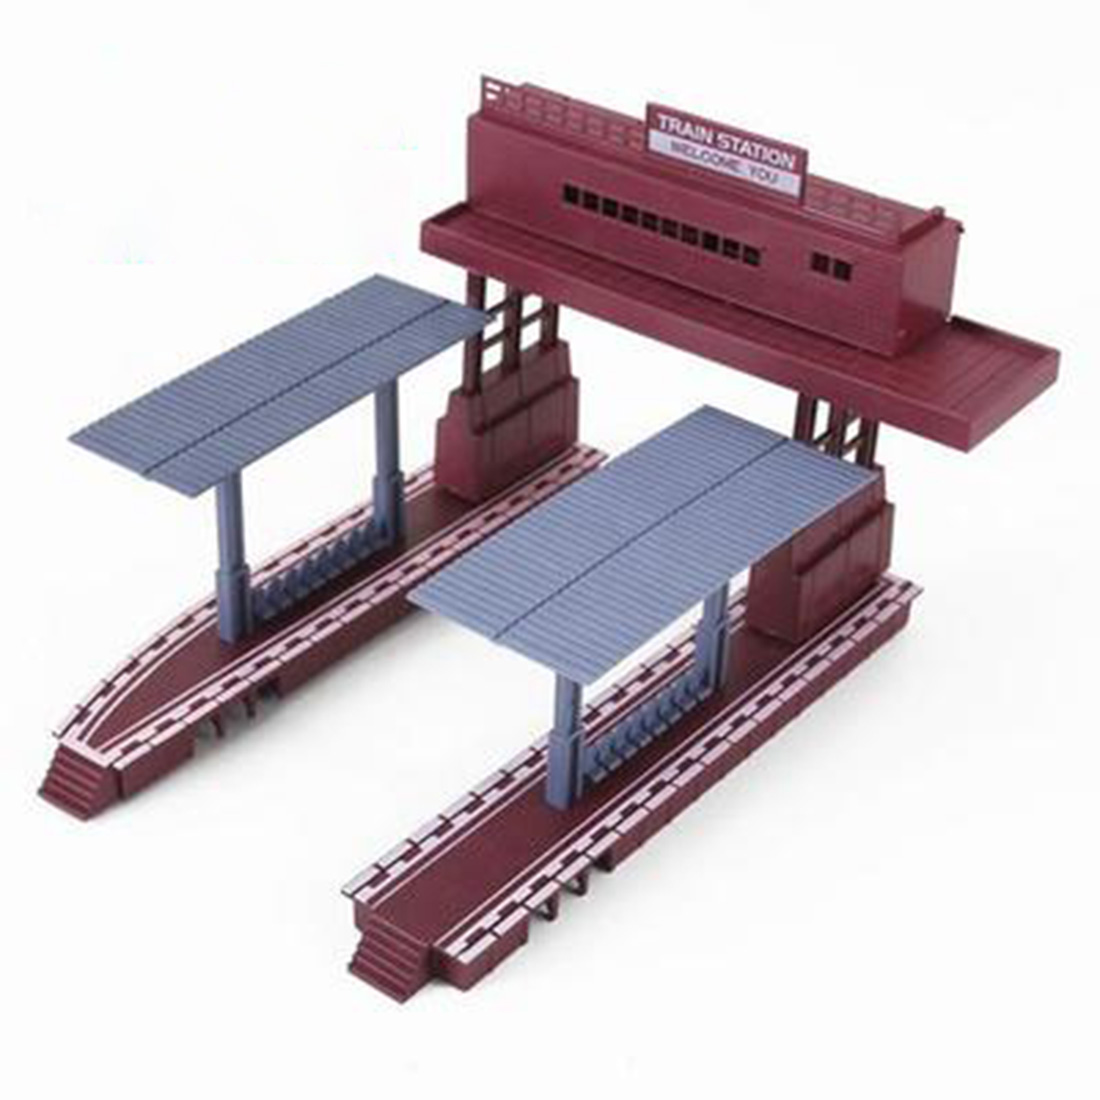 1:87 HO Scale Railway Scene Decoration Station Model For Sand Table Building Model Building Kits